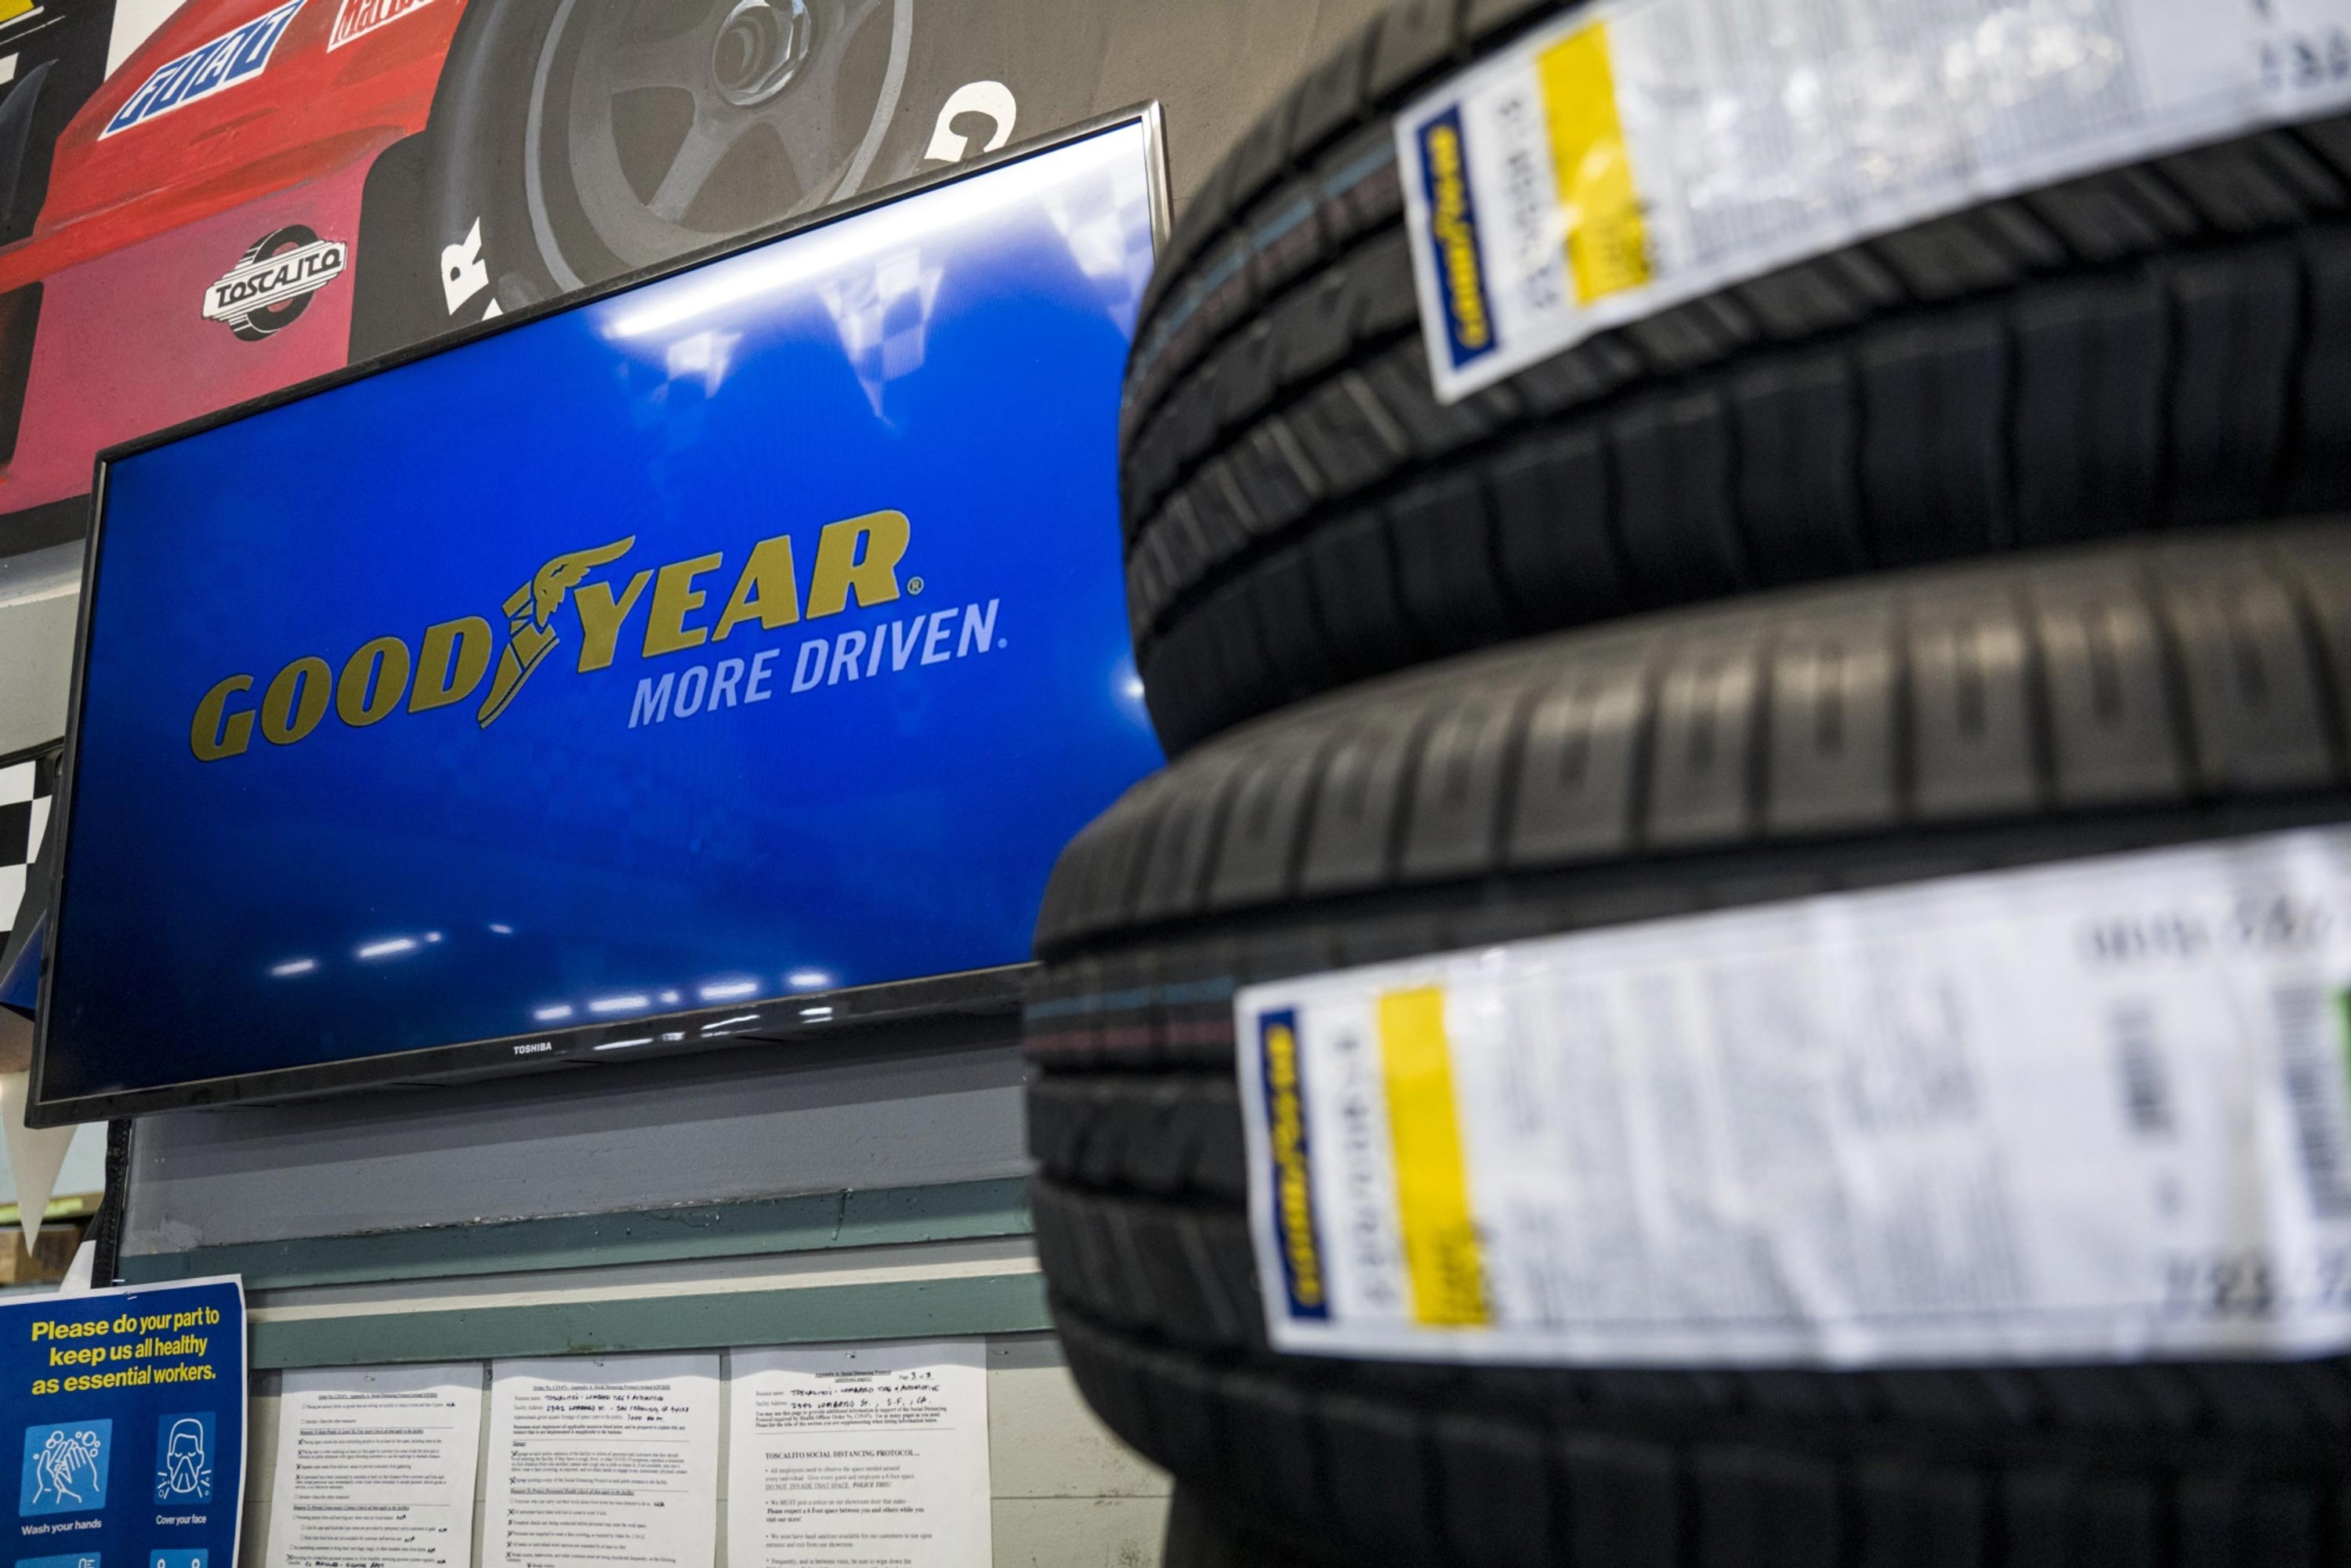 Trump targets Goodyear in his latest tweet targeting a brand, claims it banned MAGA hats